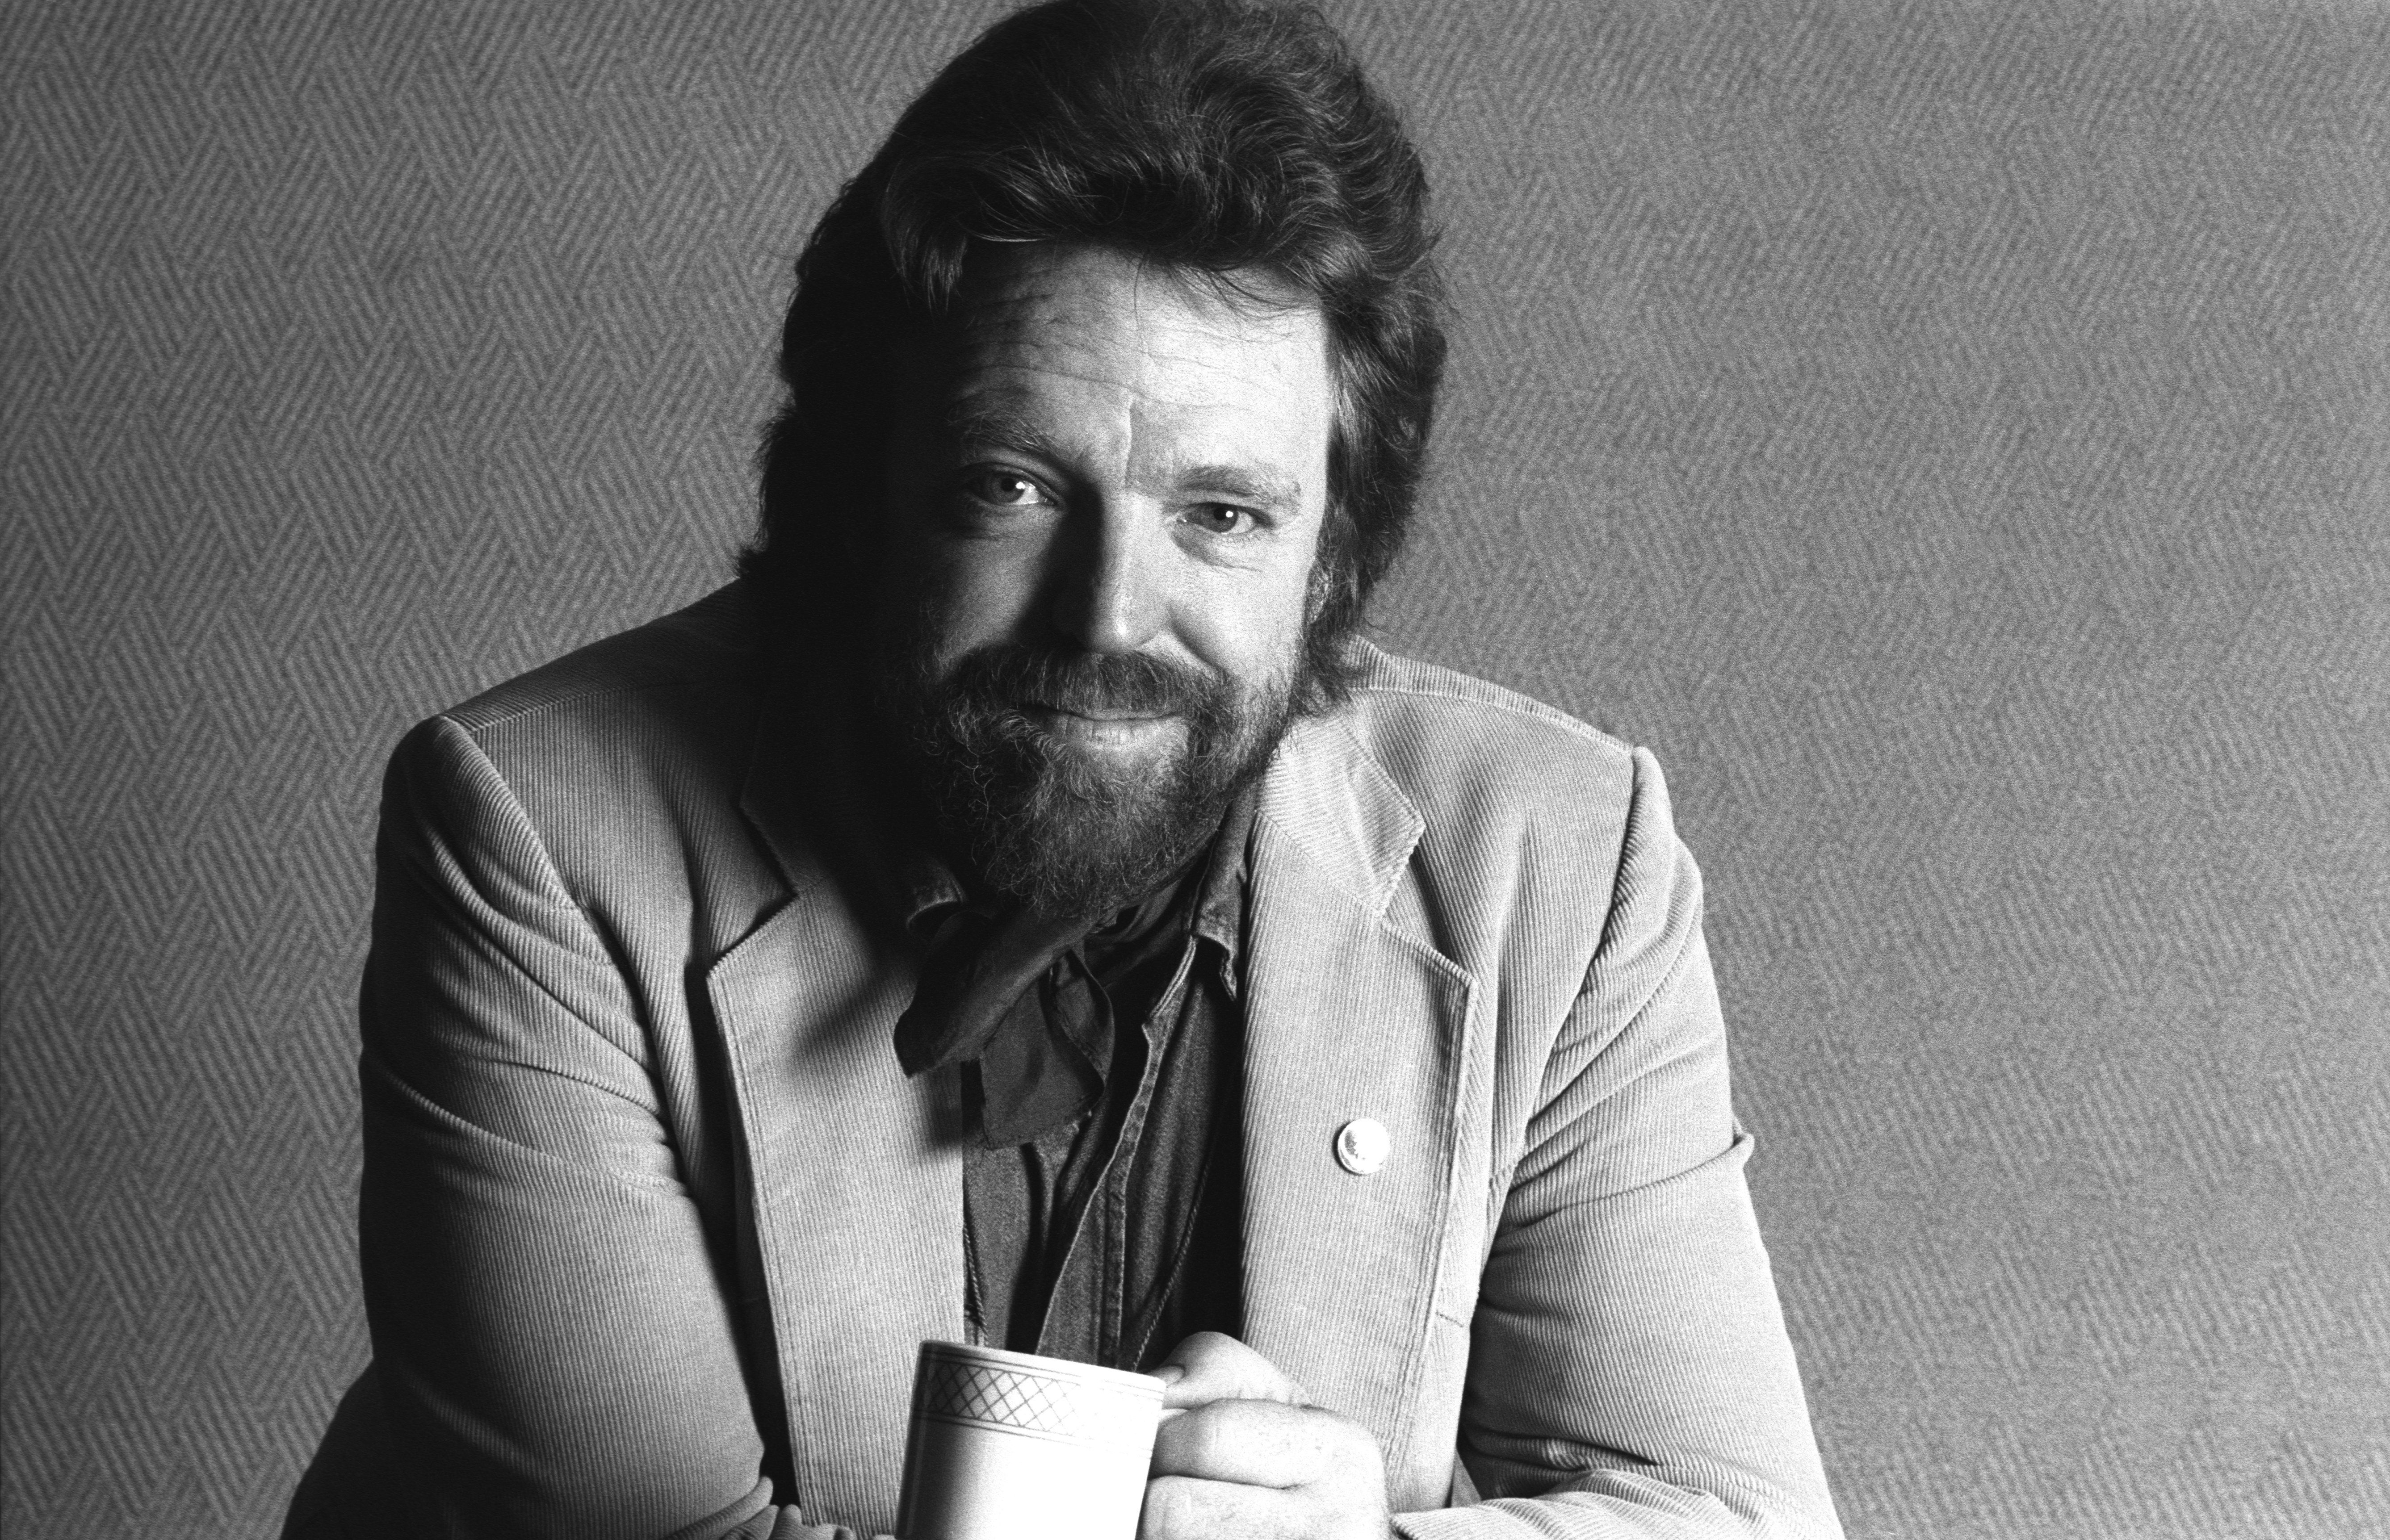 Portrait of John Perry Barlow, from Electronic Frontier Foundation/Berkman Center for Internet and Society, at the annual PC Forum, Tucson, Arizona, March 10-13, 1991. (Photo by Ann E. Yow-Dyson/Getty Images)